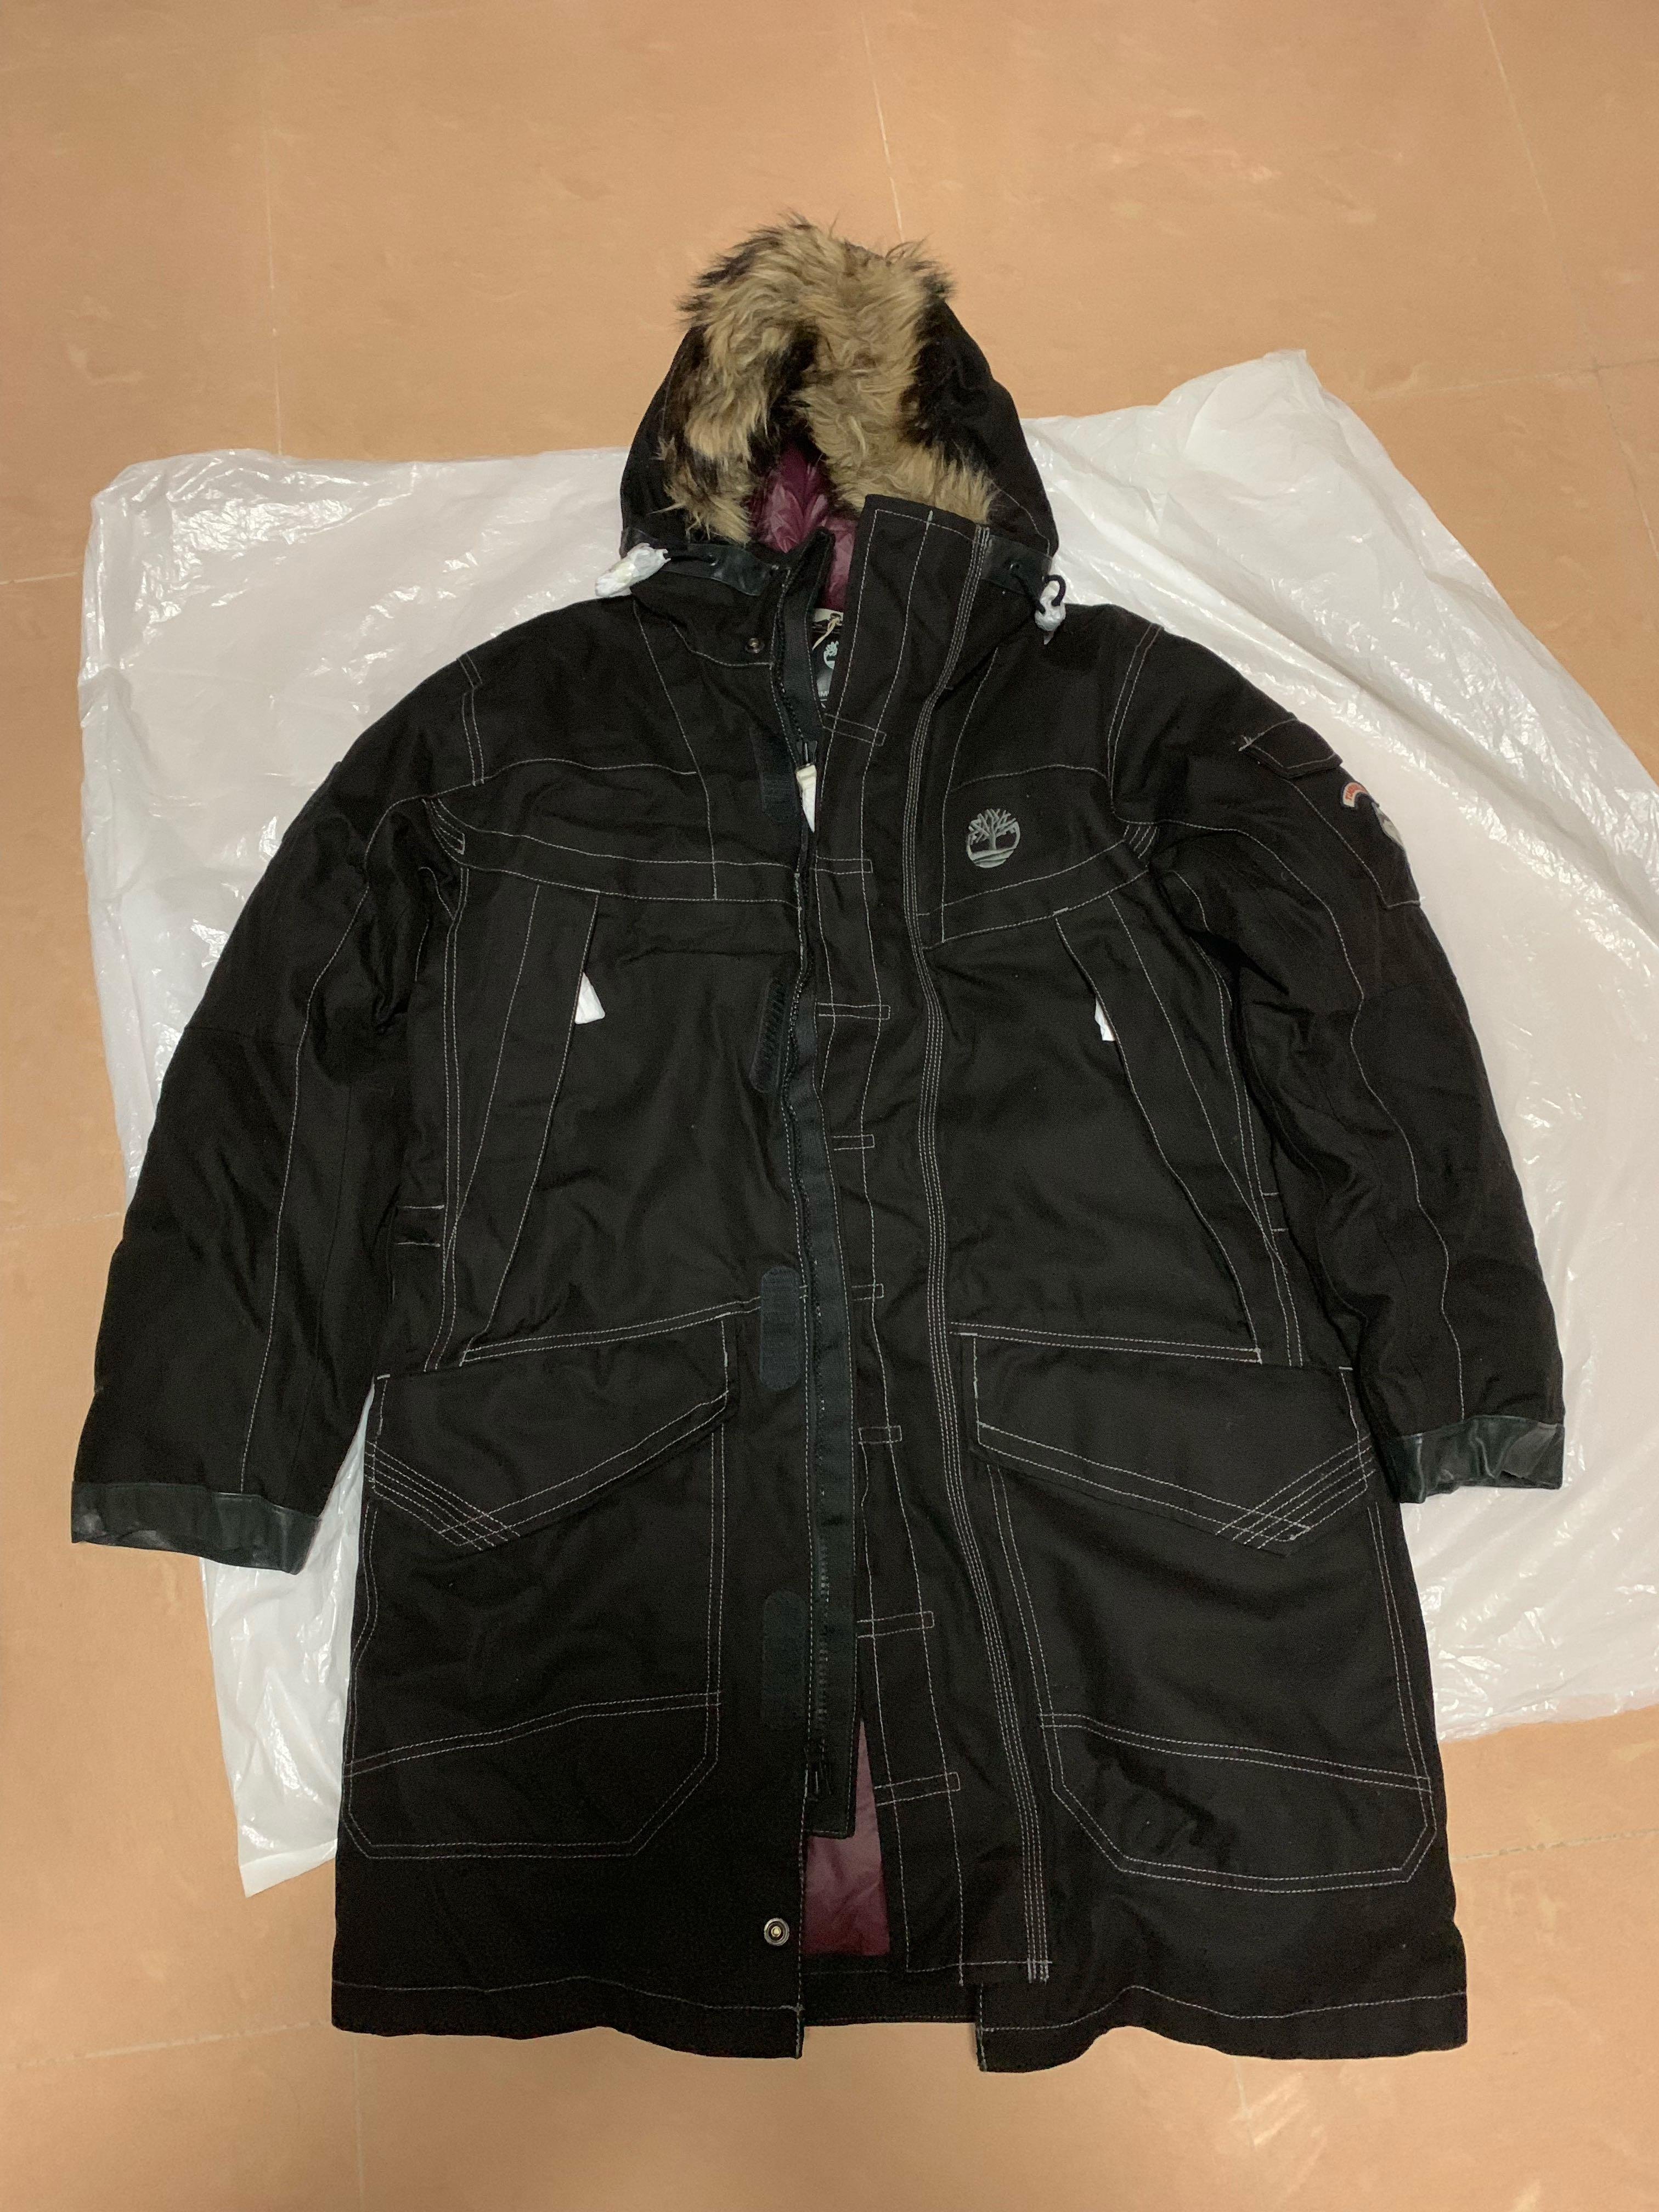 Timberland feather jacket